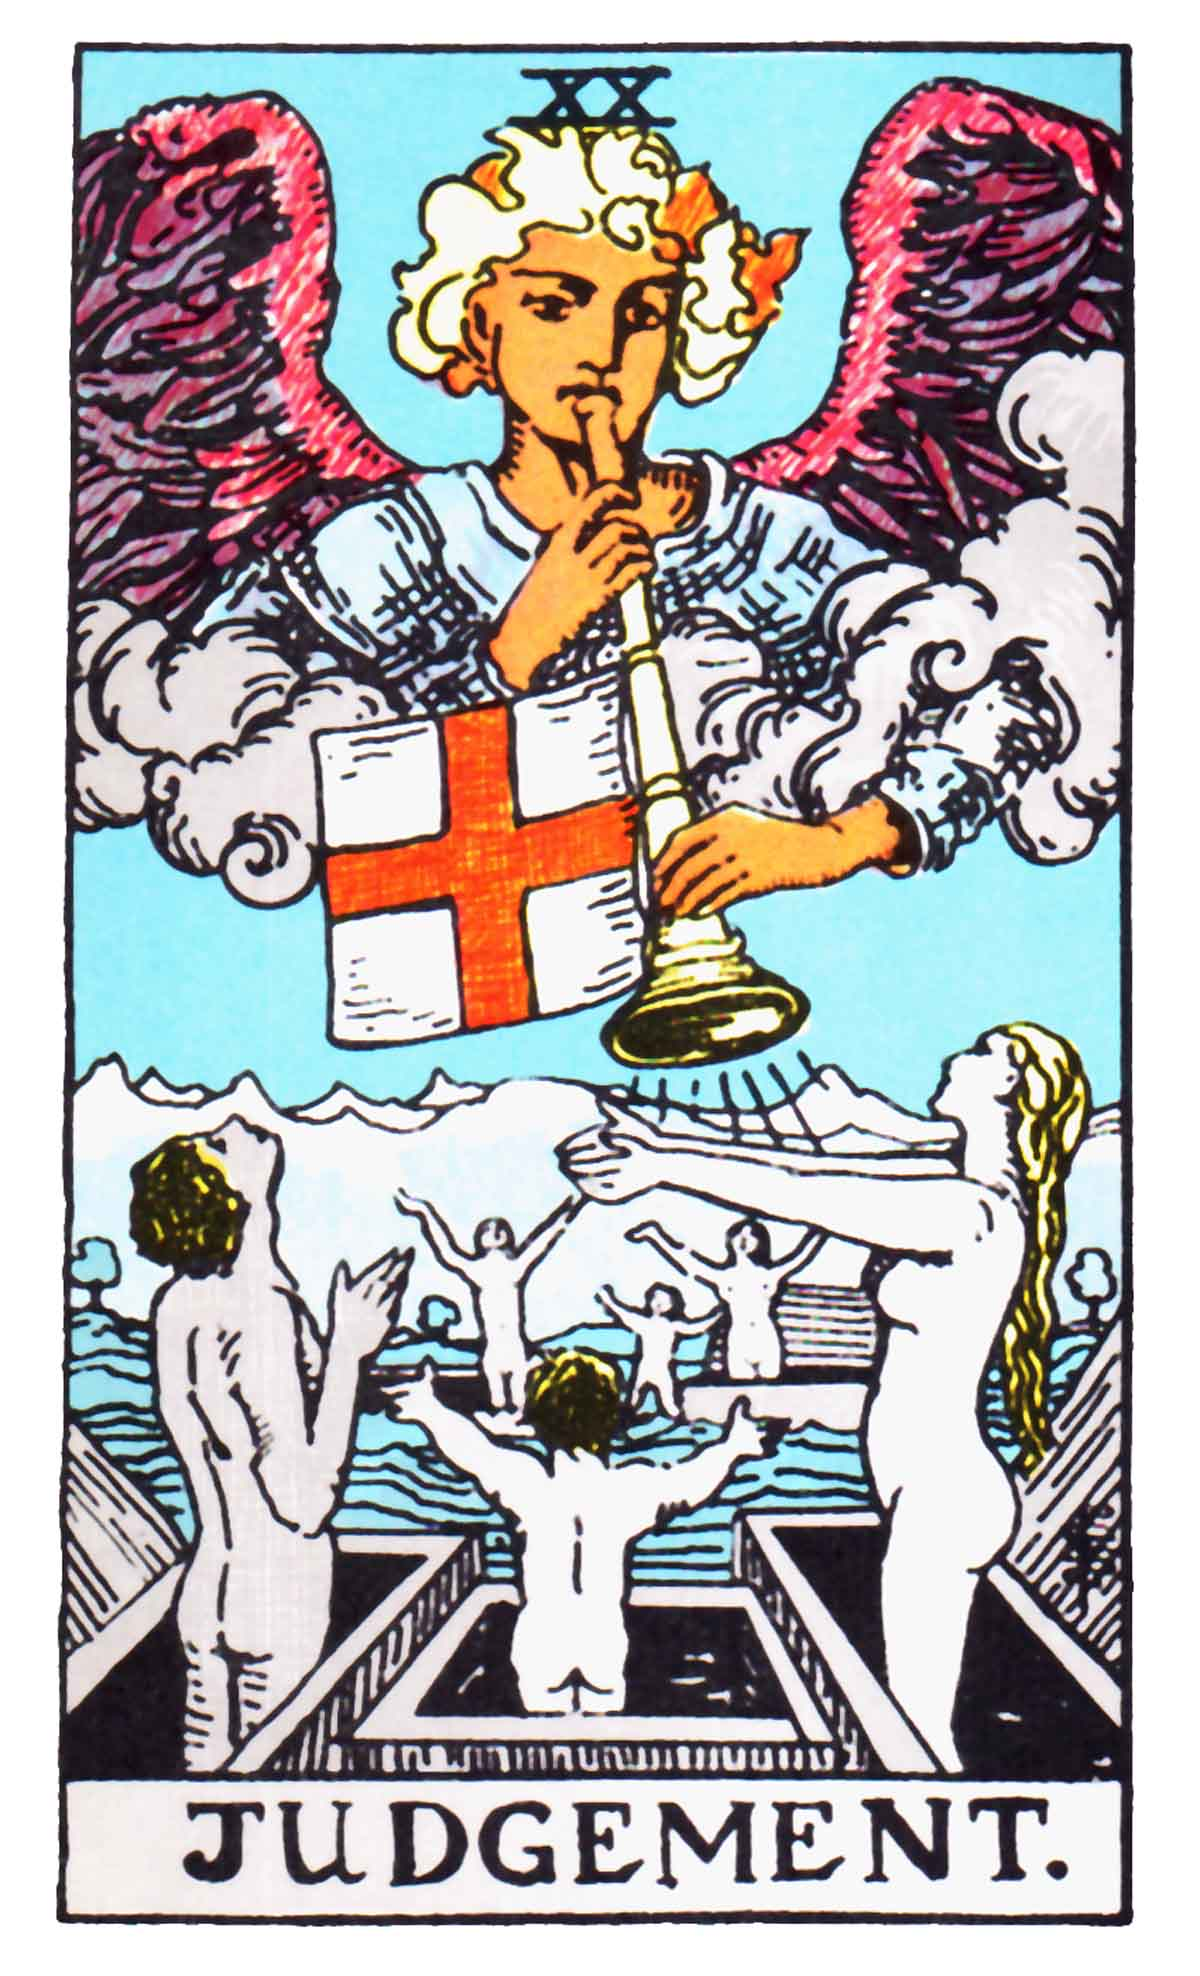 The Judgement Tarot Card Meaning In Readings: The Final